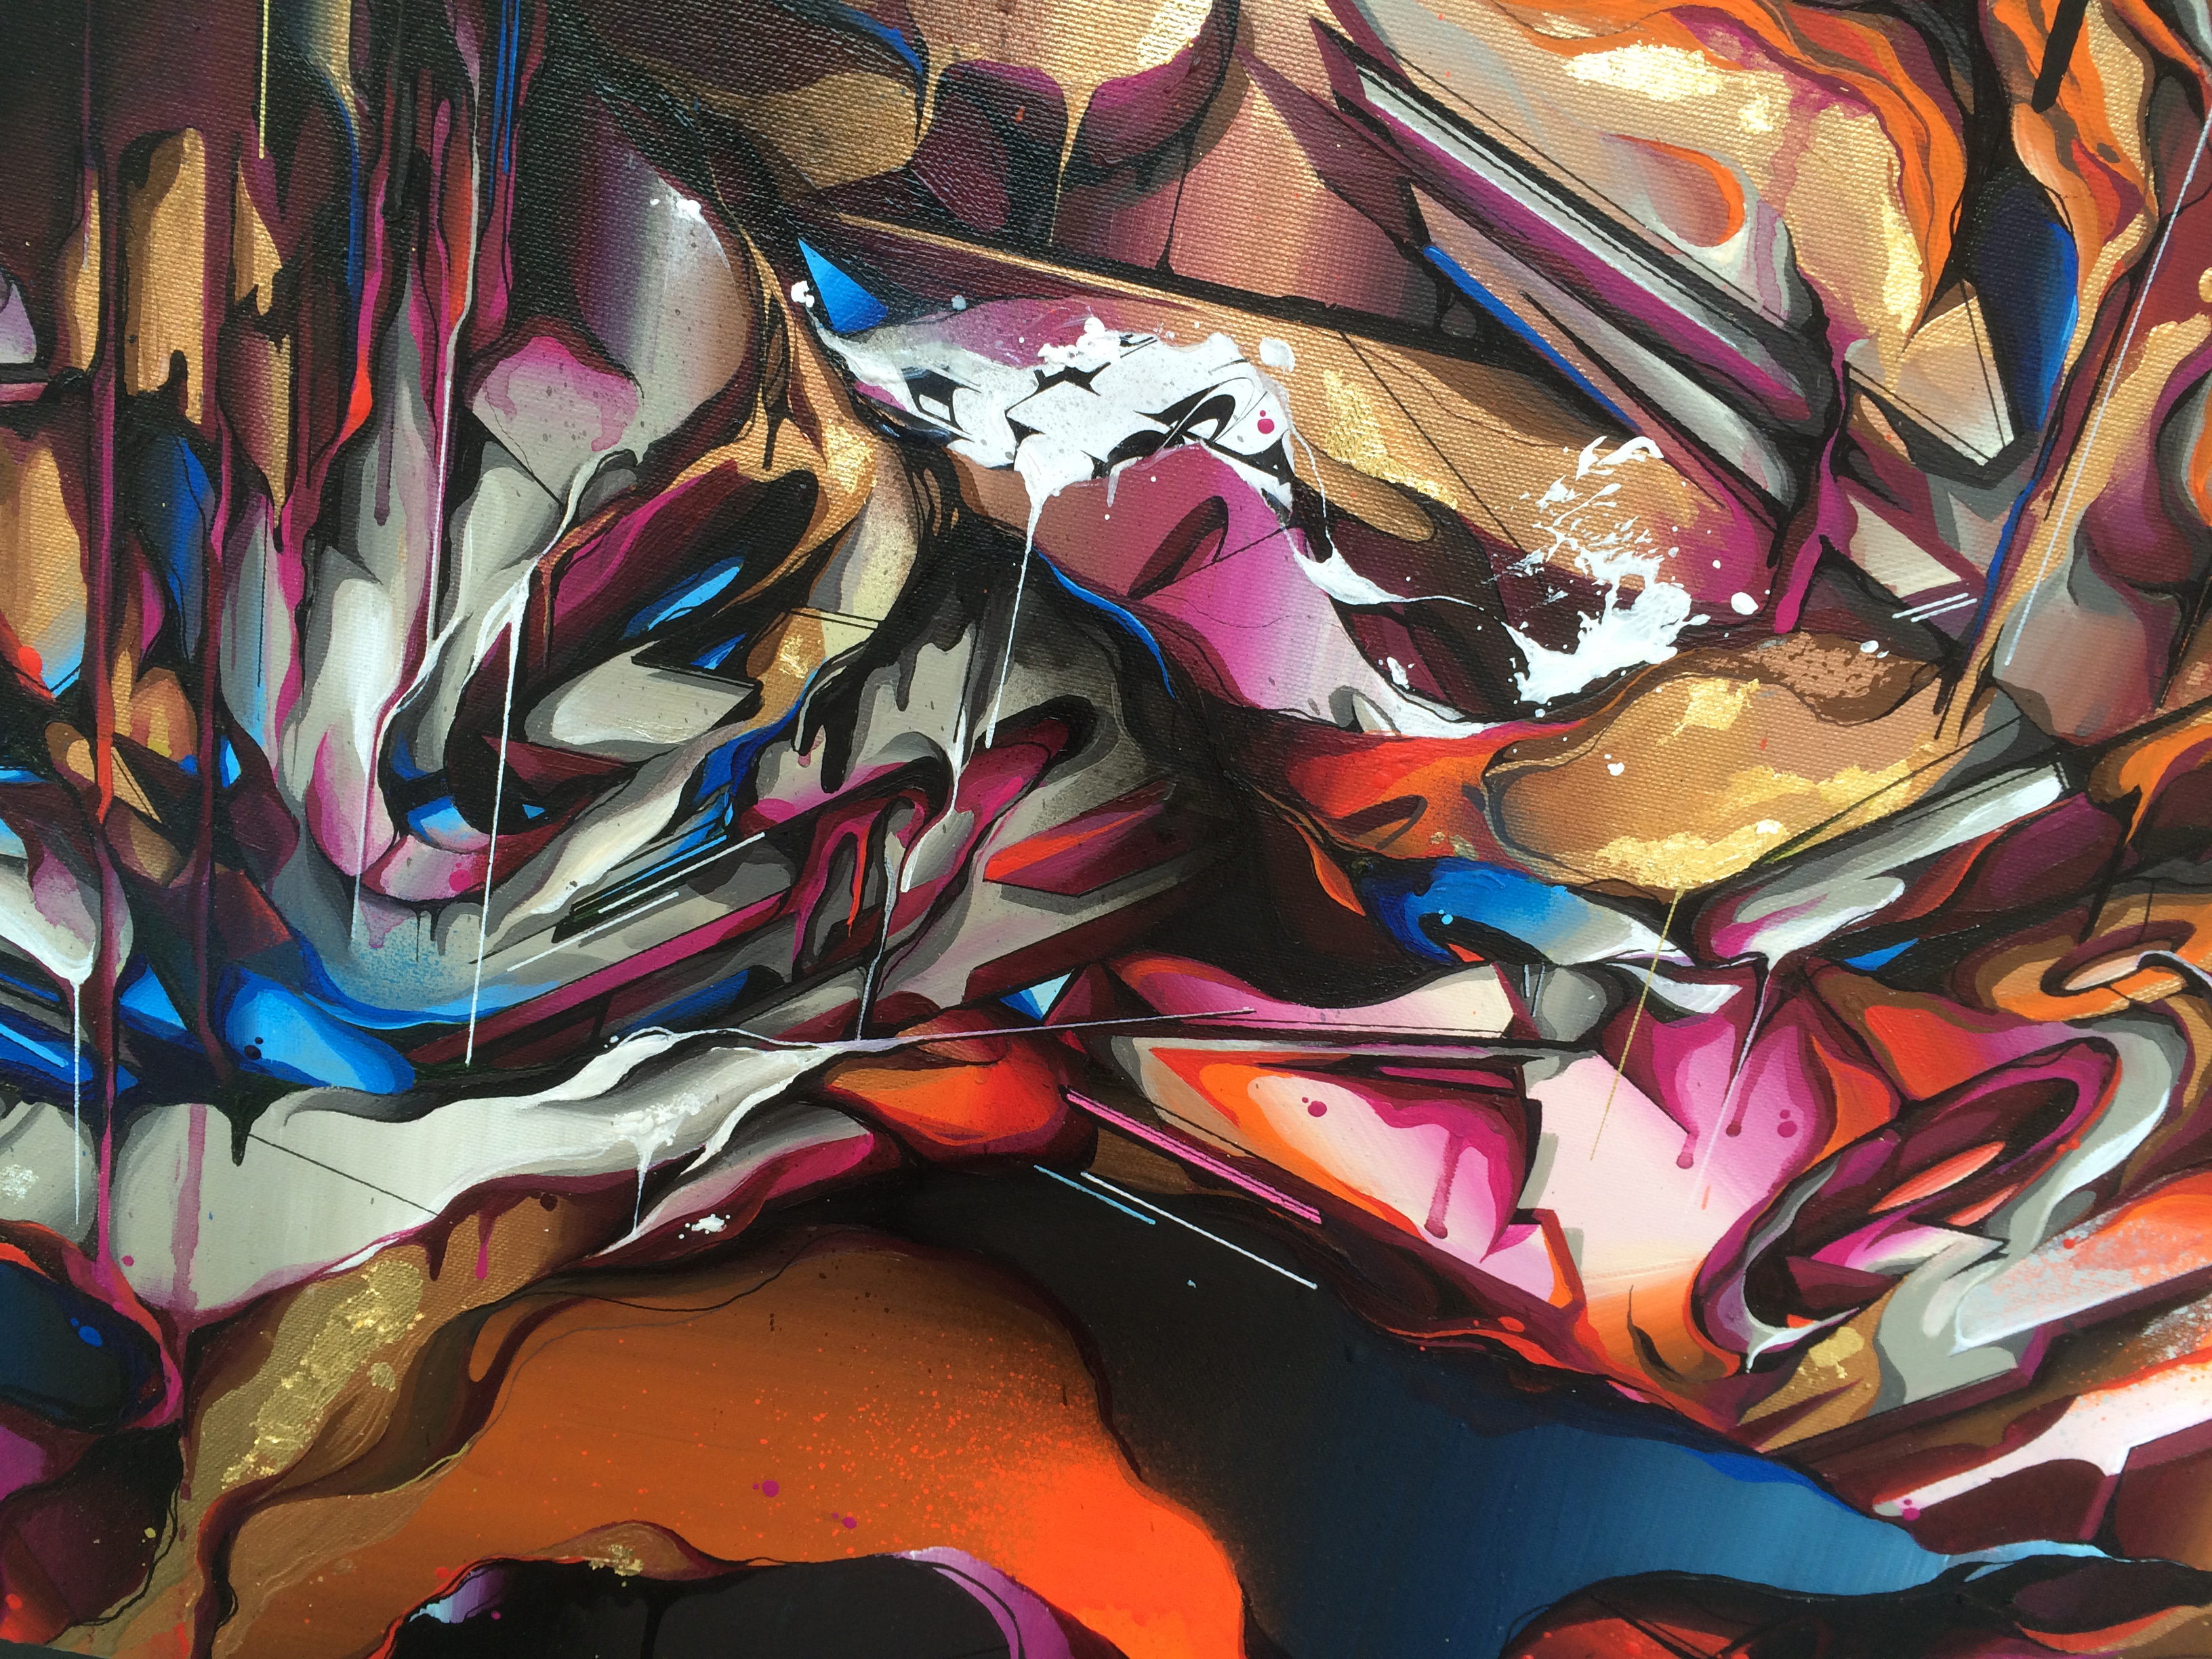 A work by Does - Detail canvas tempest 3